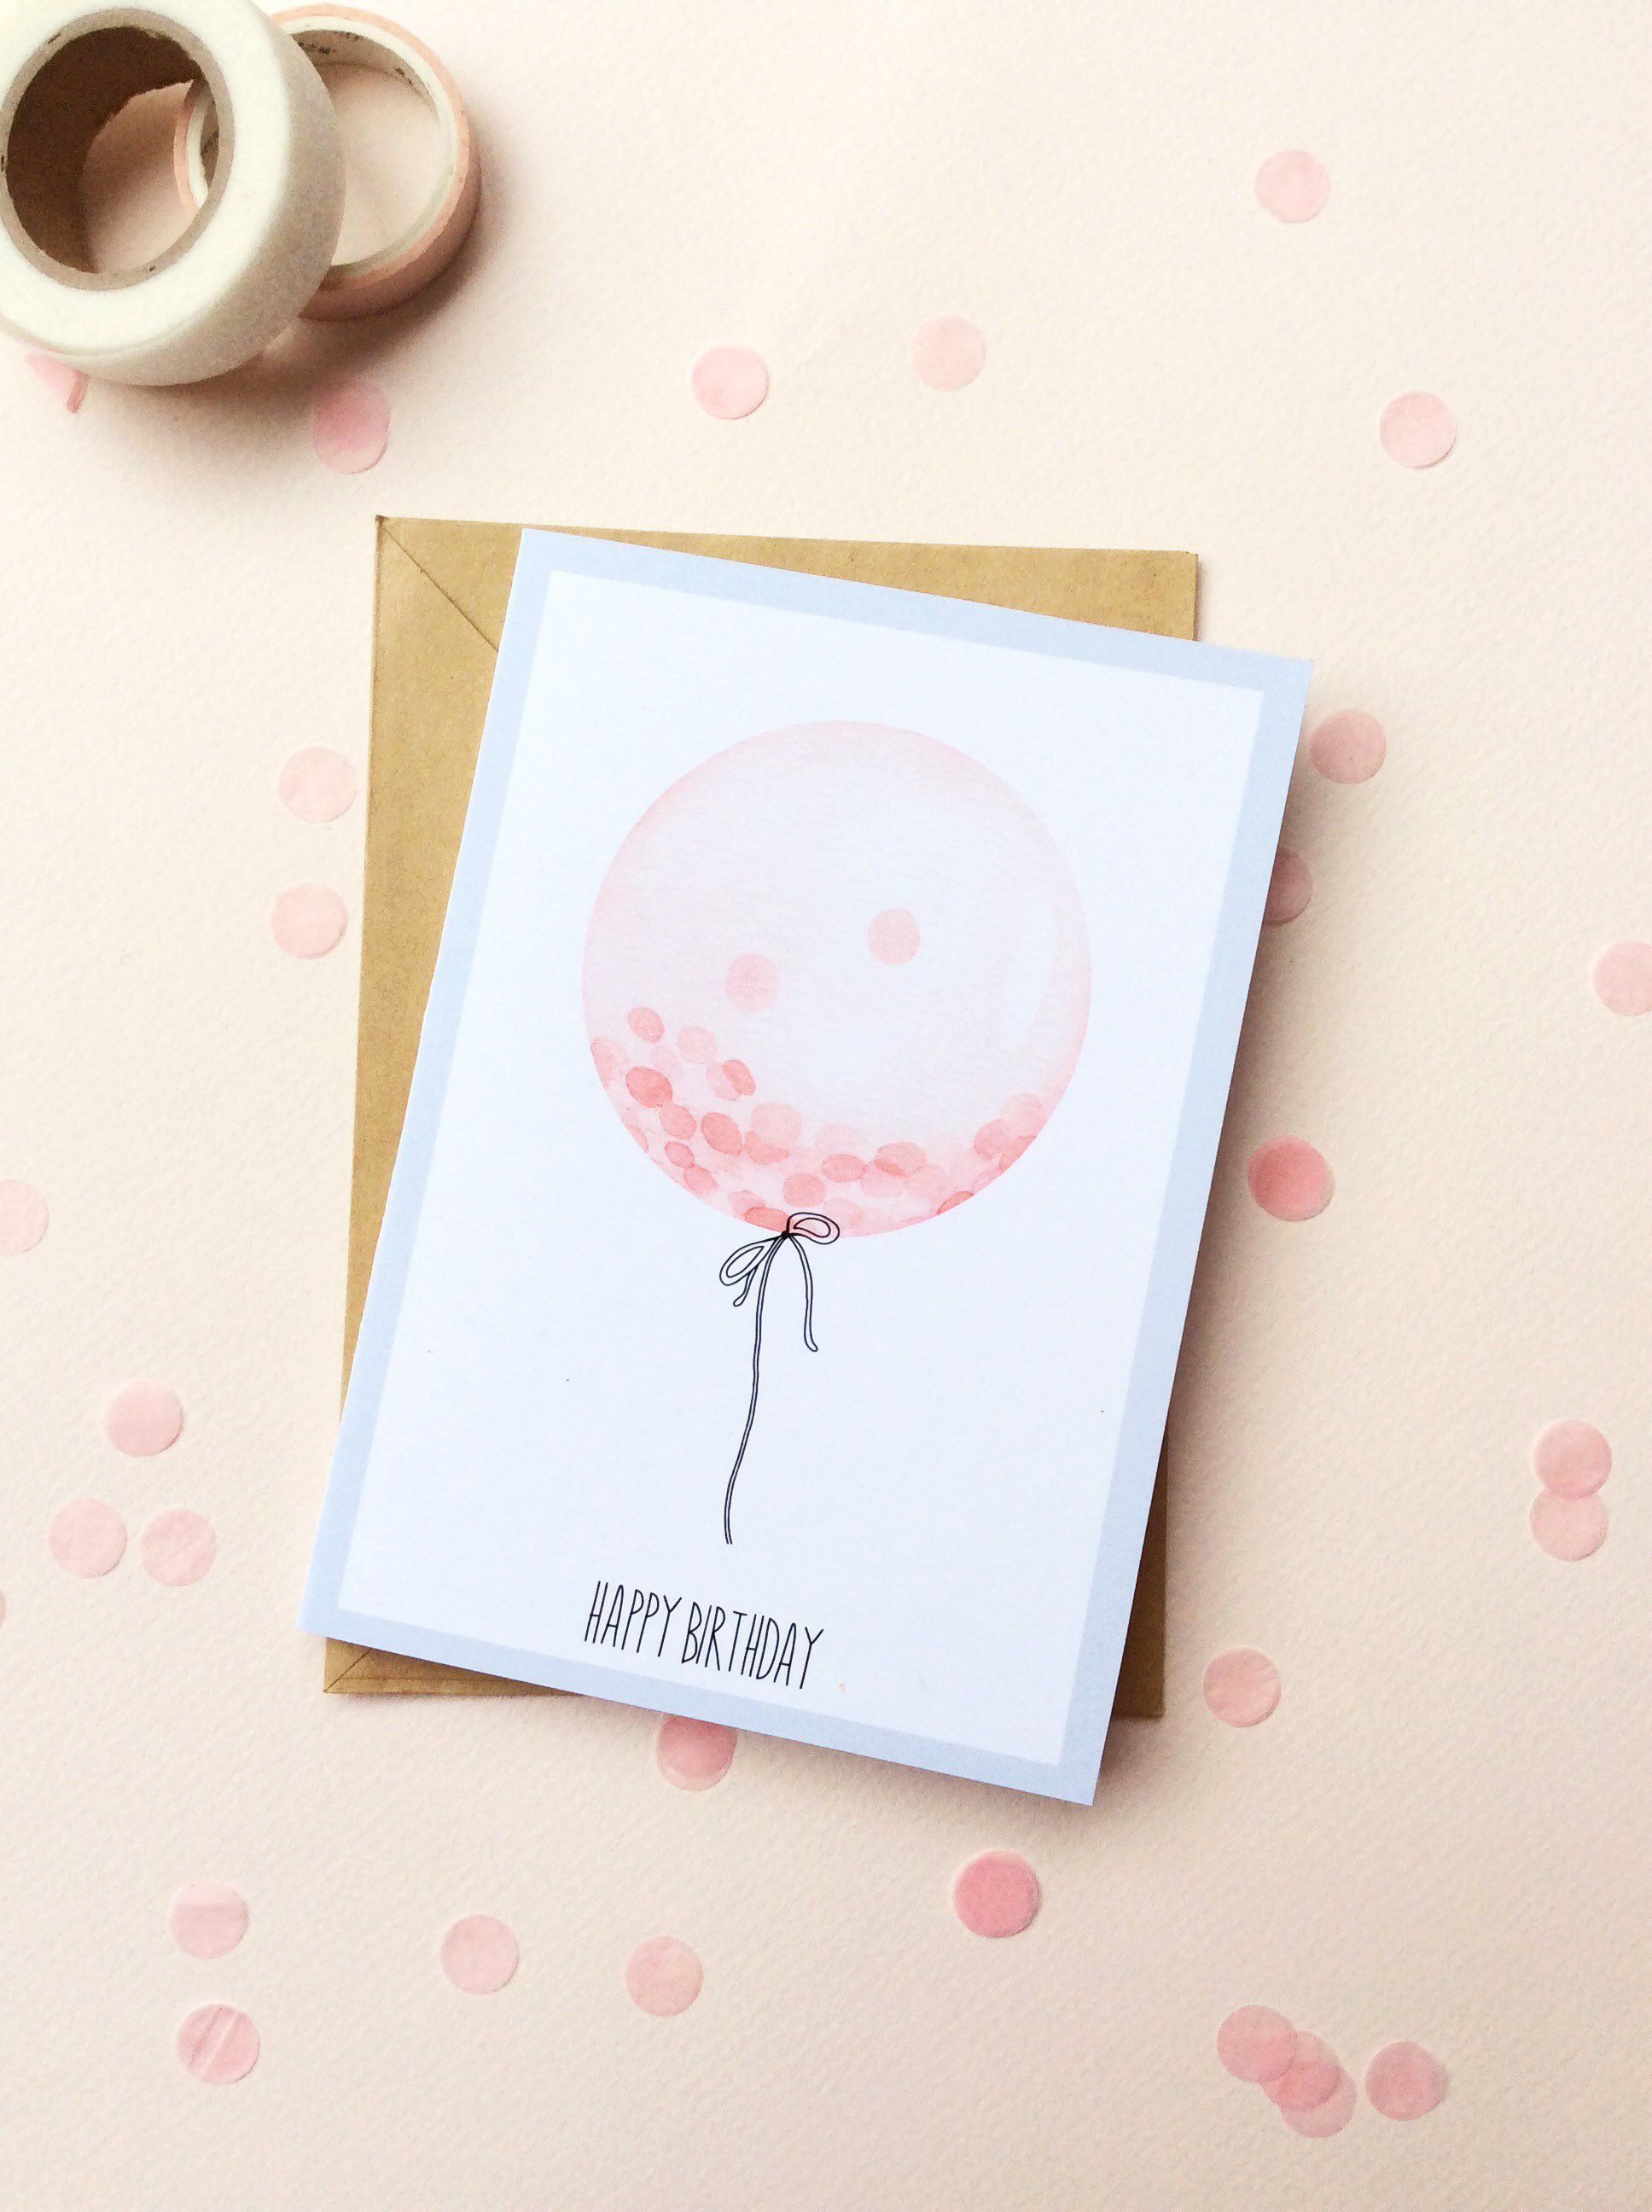 Greetings Cards Watercolor Happy Birthday Watercolor Balloon